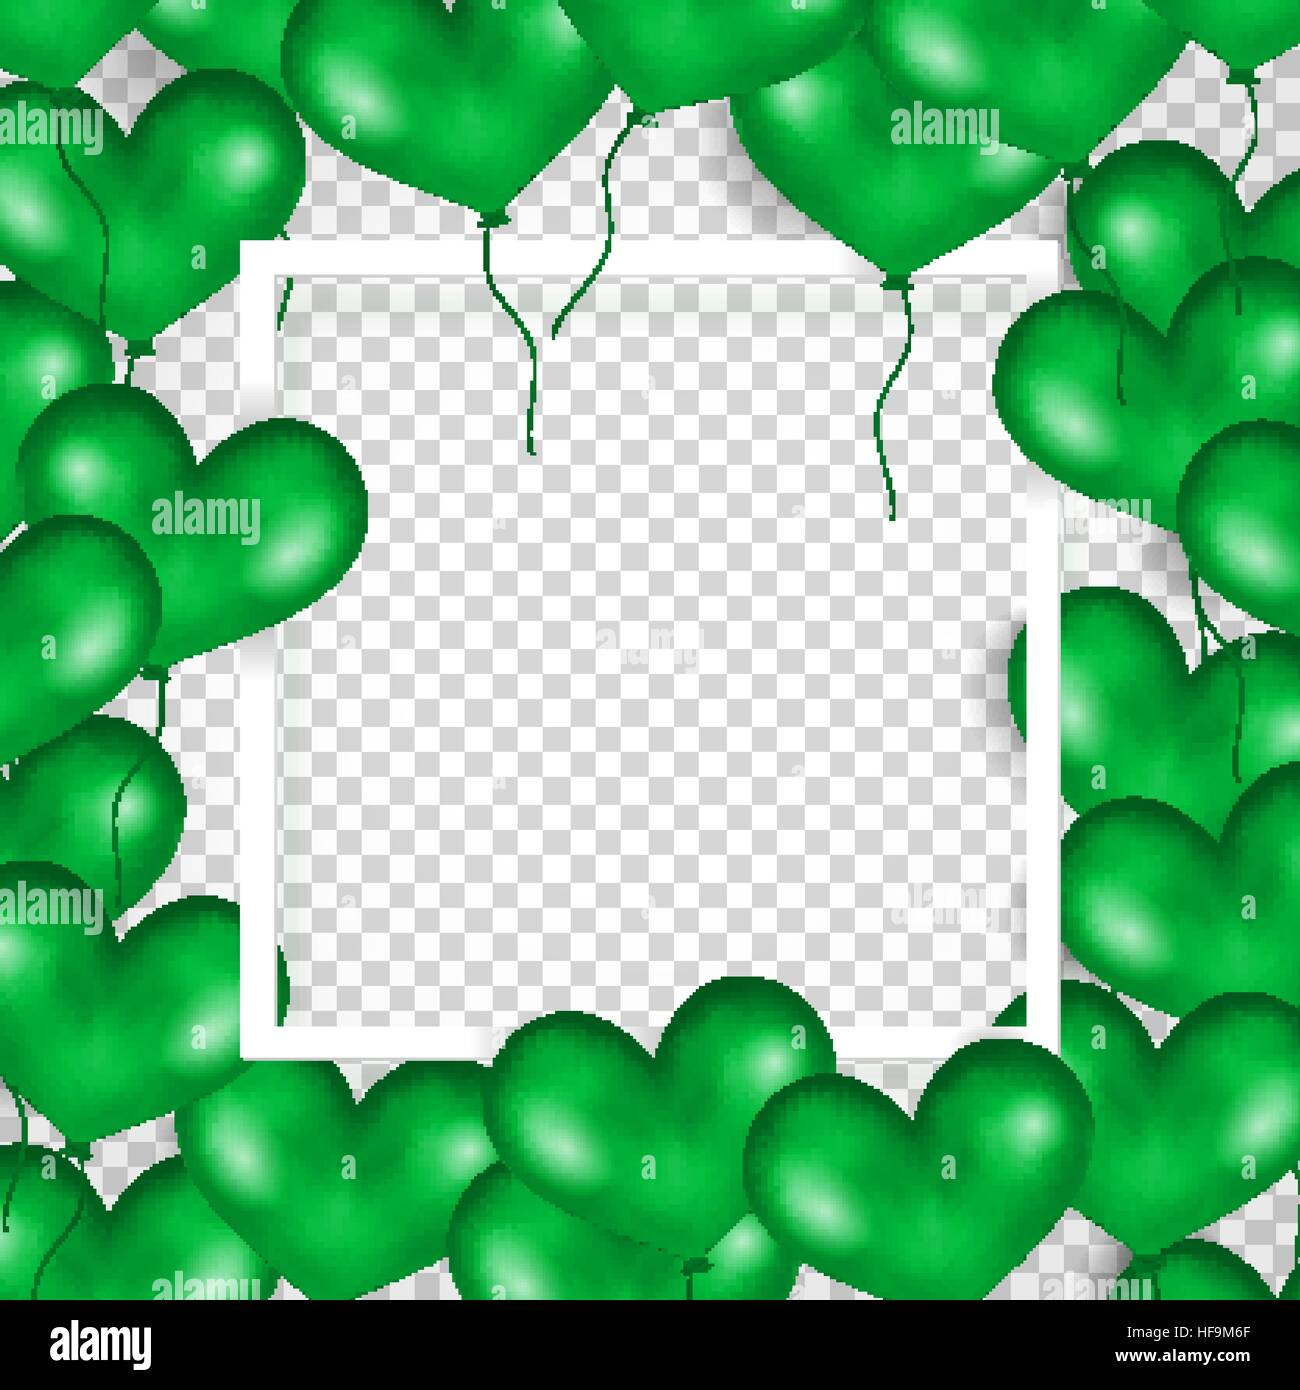 frame with green balloons in form of heart  transparent